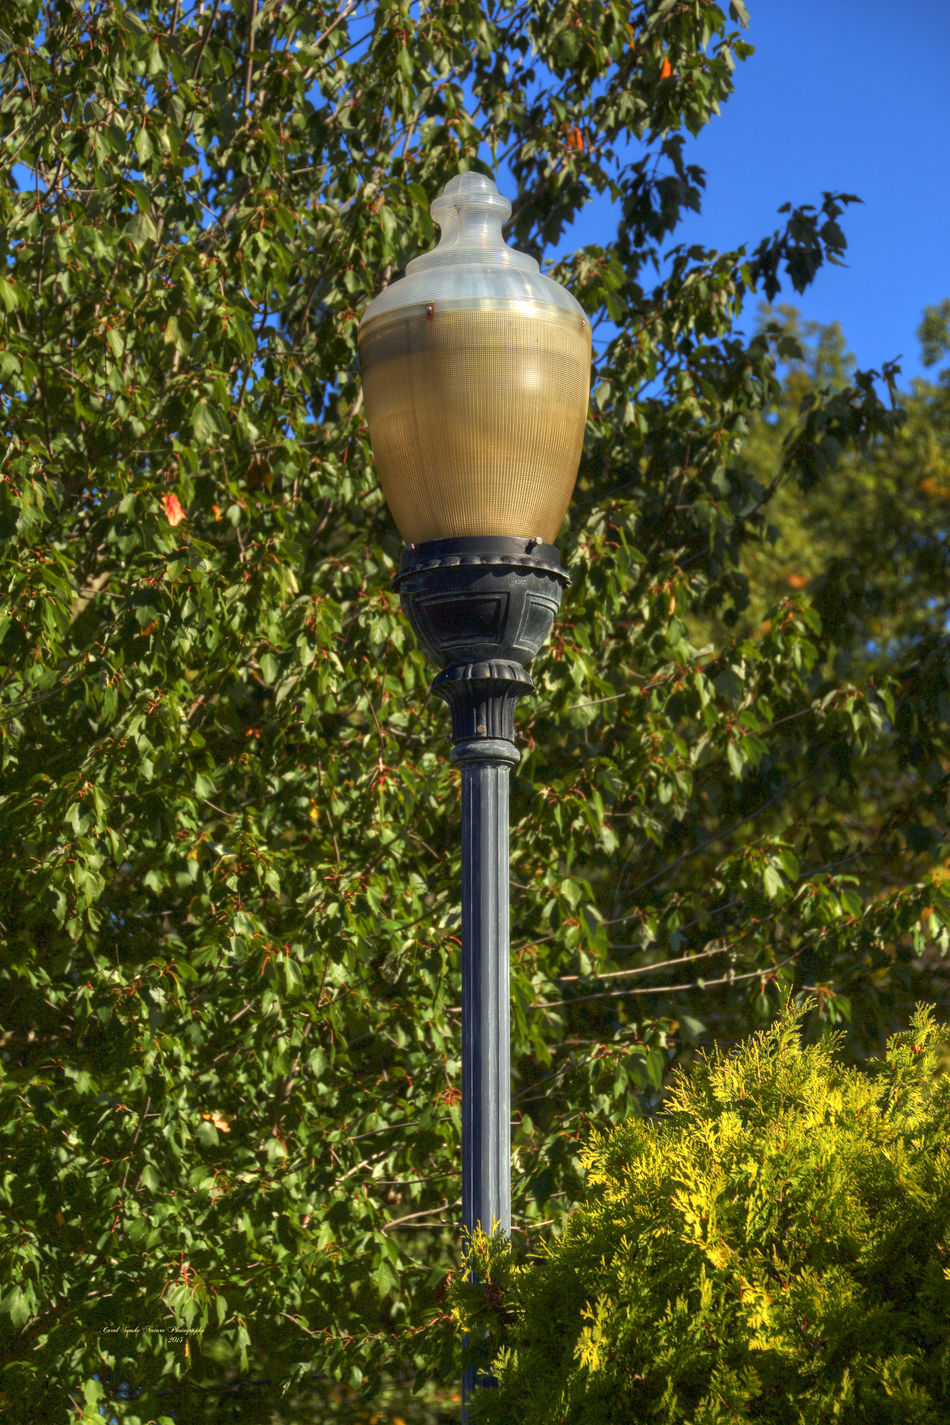 A lovely antique lamp stands outside amidst some trees. The globe is old glass, gold and white. I believe this was, at one time, a gas light. Antique Decoration Electric Lamp Electric Light Focus On Foreground Gas Light Glass Lamp Shade Illuminated Lamp Lamp Post Lantern Lighting Equipment Low Angle View No People Outdoors Possibilities  Protection Safety Simplicity Street Light